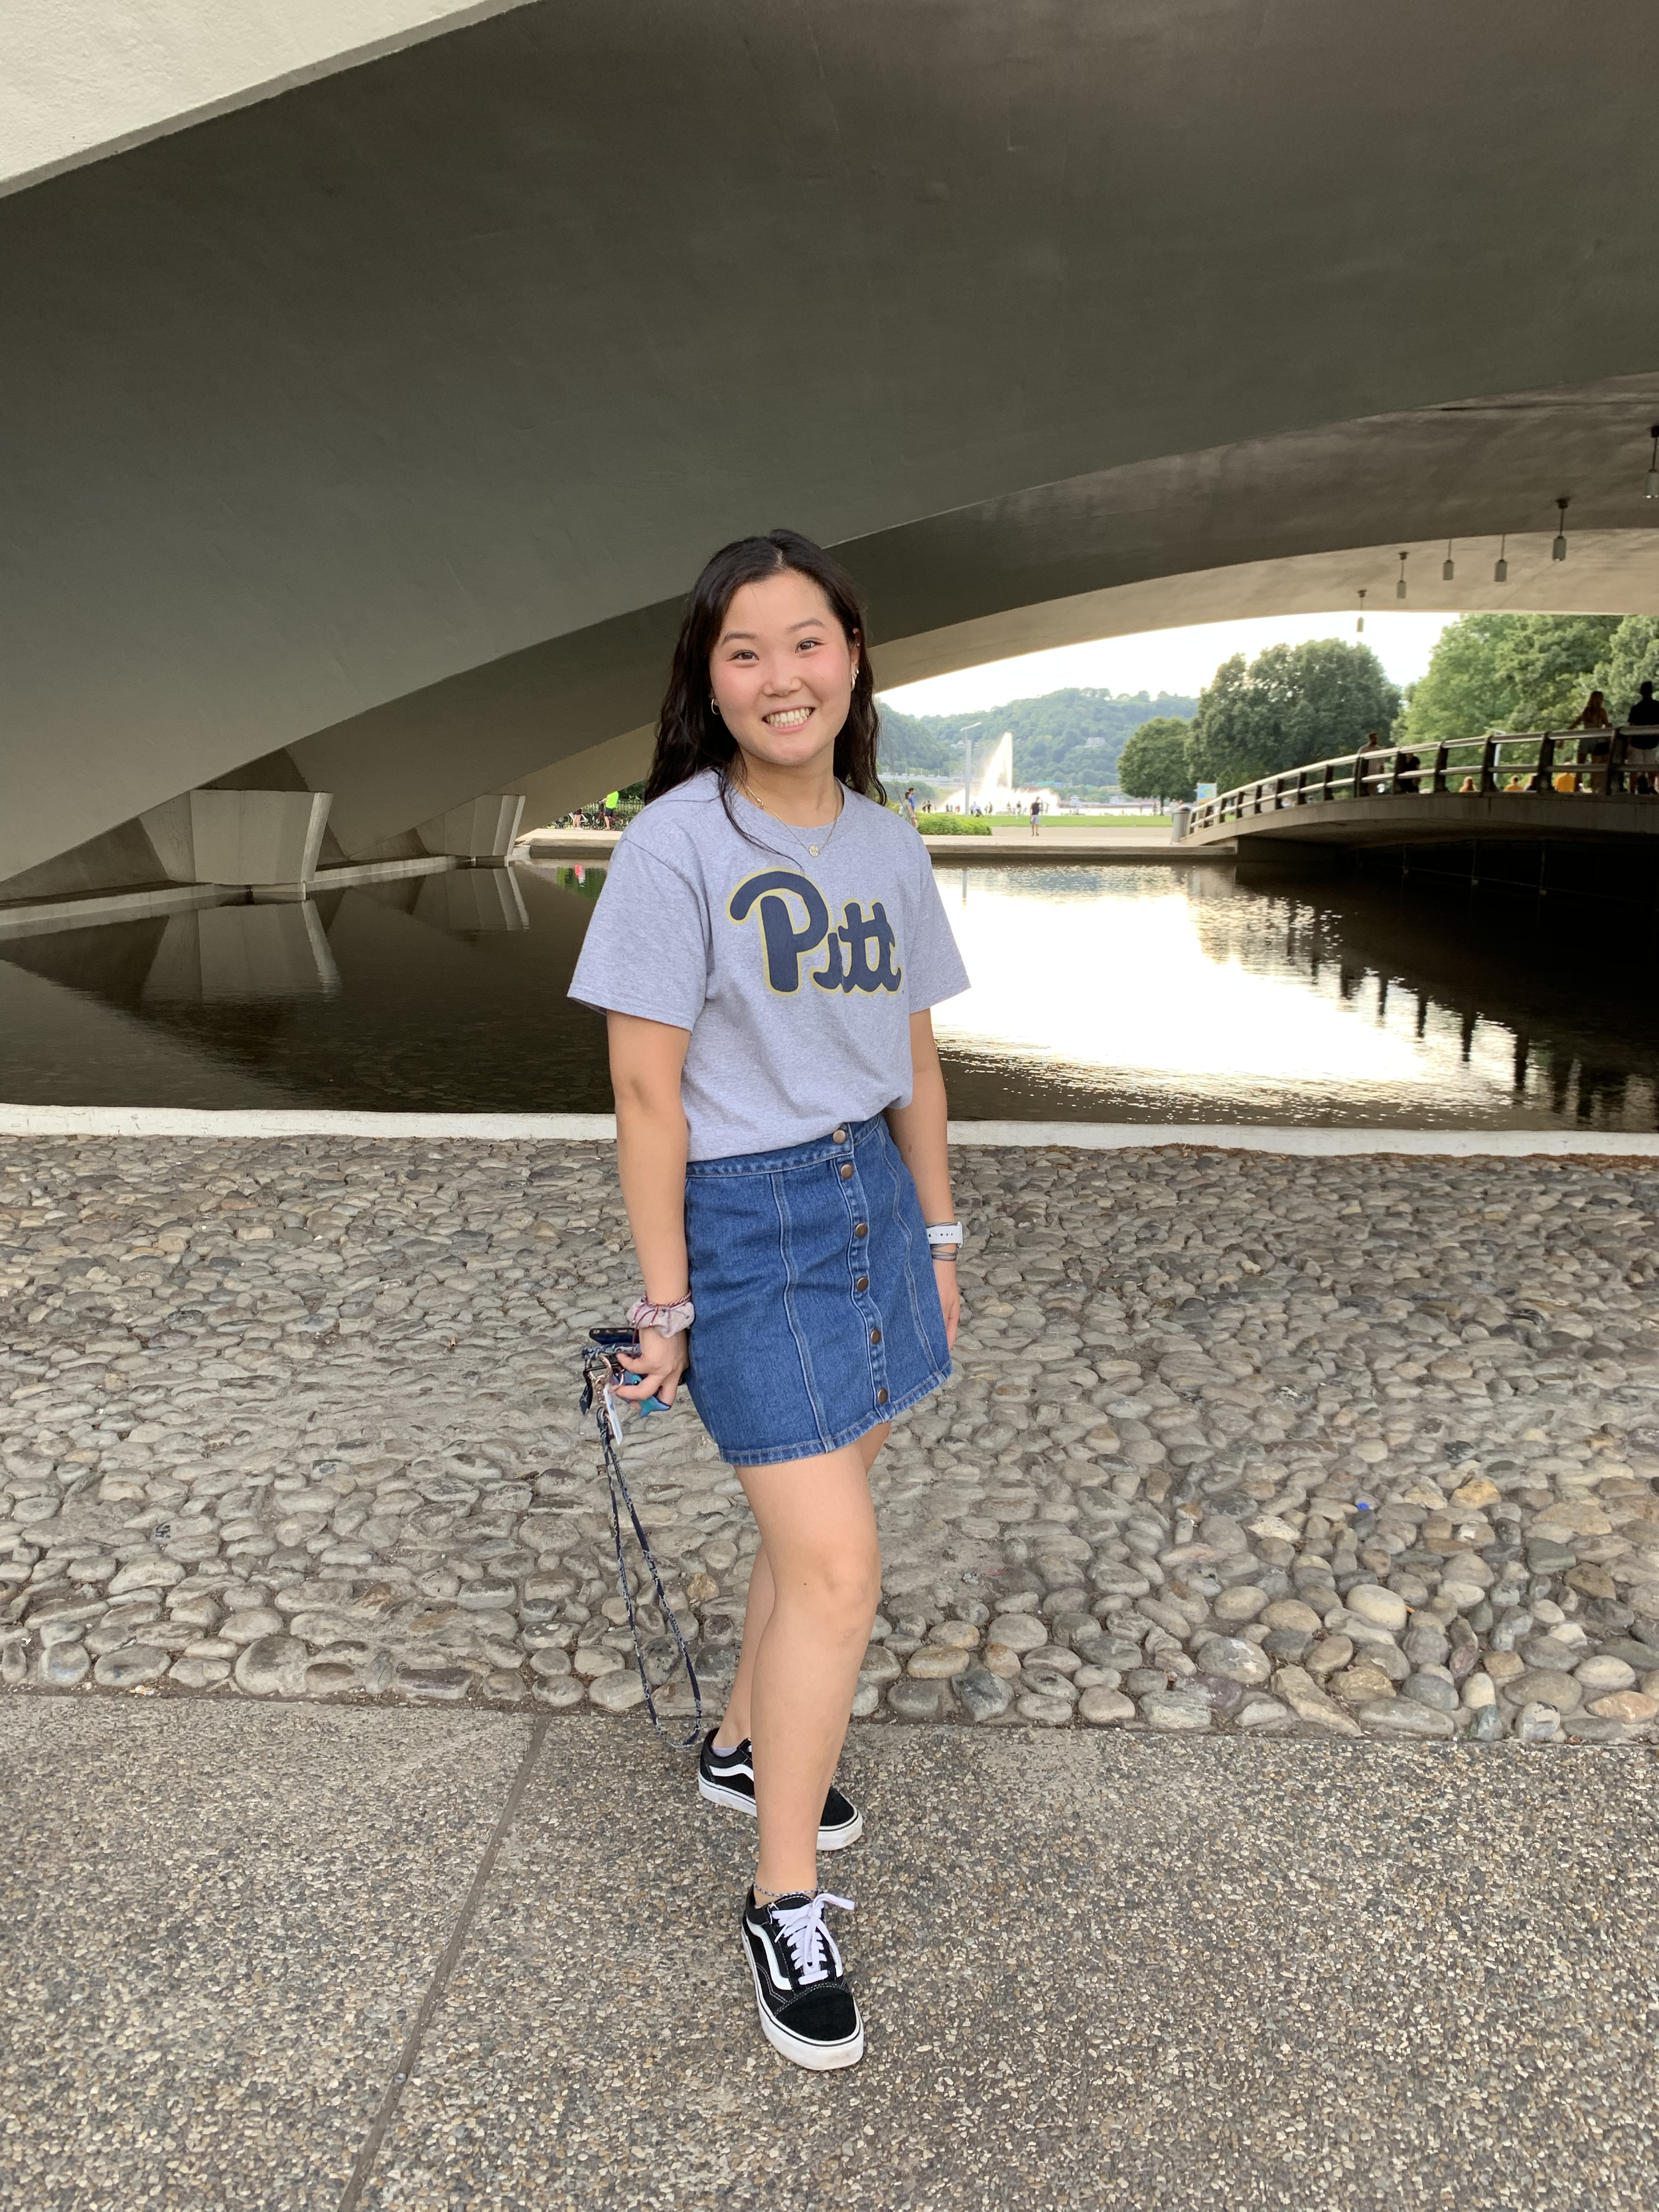 """Rachel Kim    Pronouns:  She/Her/Hers   Academic Year:  Freshman   Major:  Pre-Pharmacy   Hometown:  West Chester, PA   Cultural Identity:  Korean American  """"I love to explore different places and eat. My hobbies are to watch movies and play squash. I'm a INFJ, but I can be really outgoing once you get to know me. I am caring and a big listener."""""""